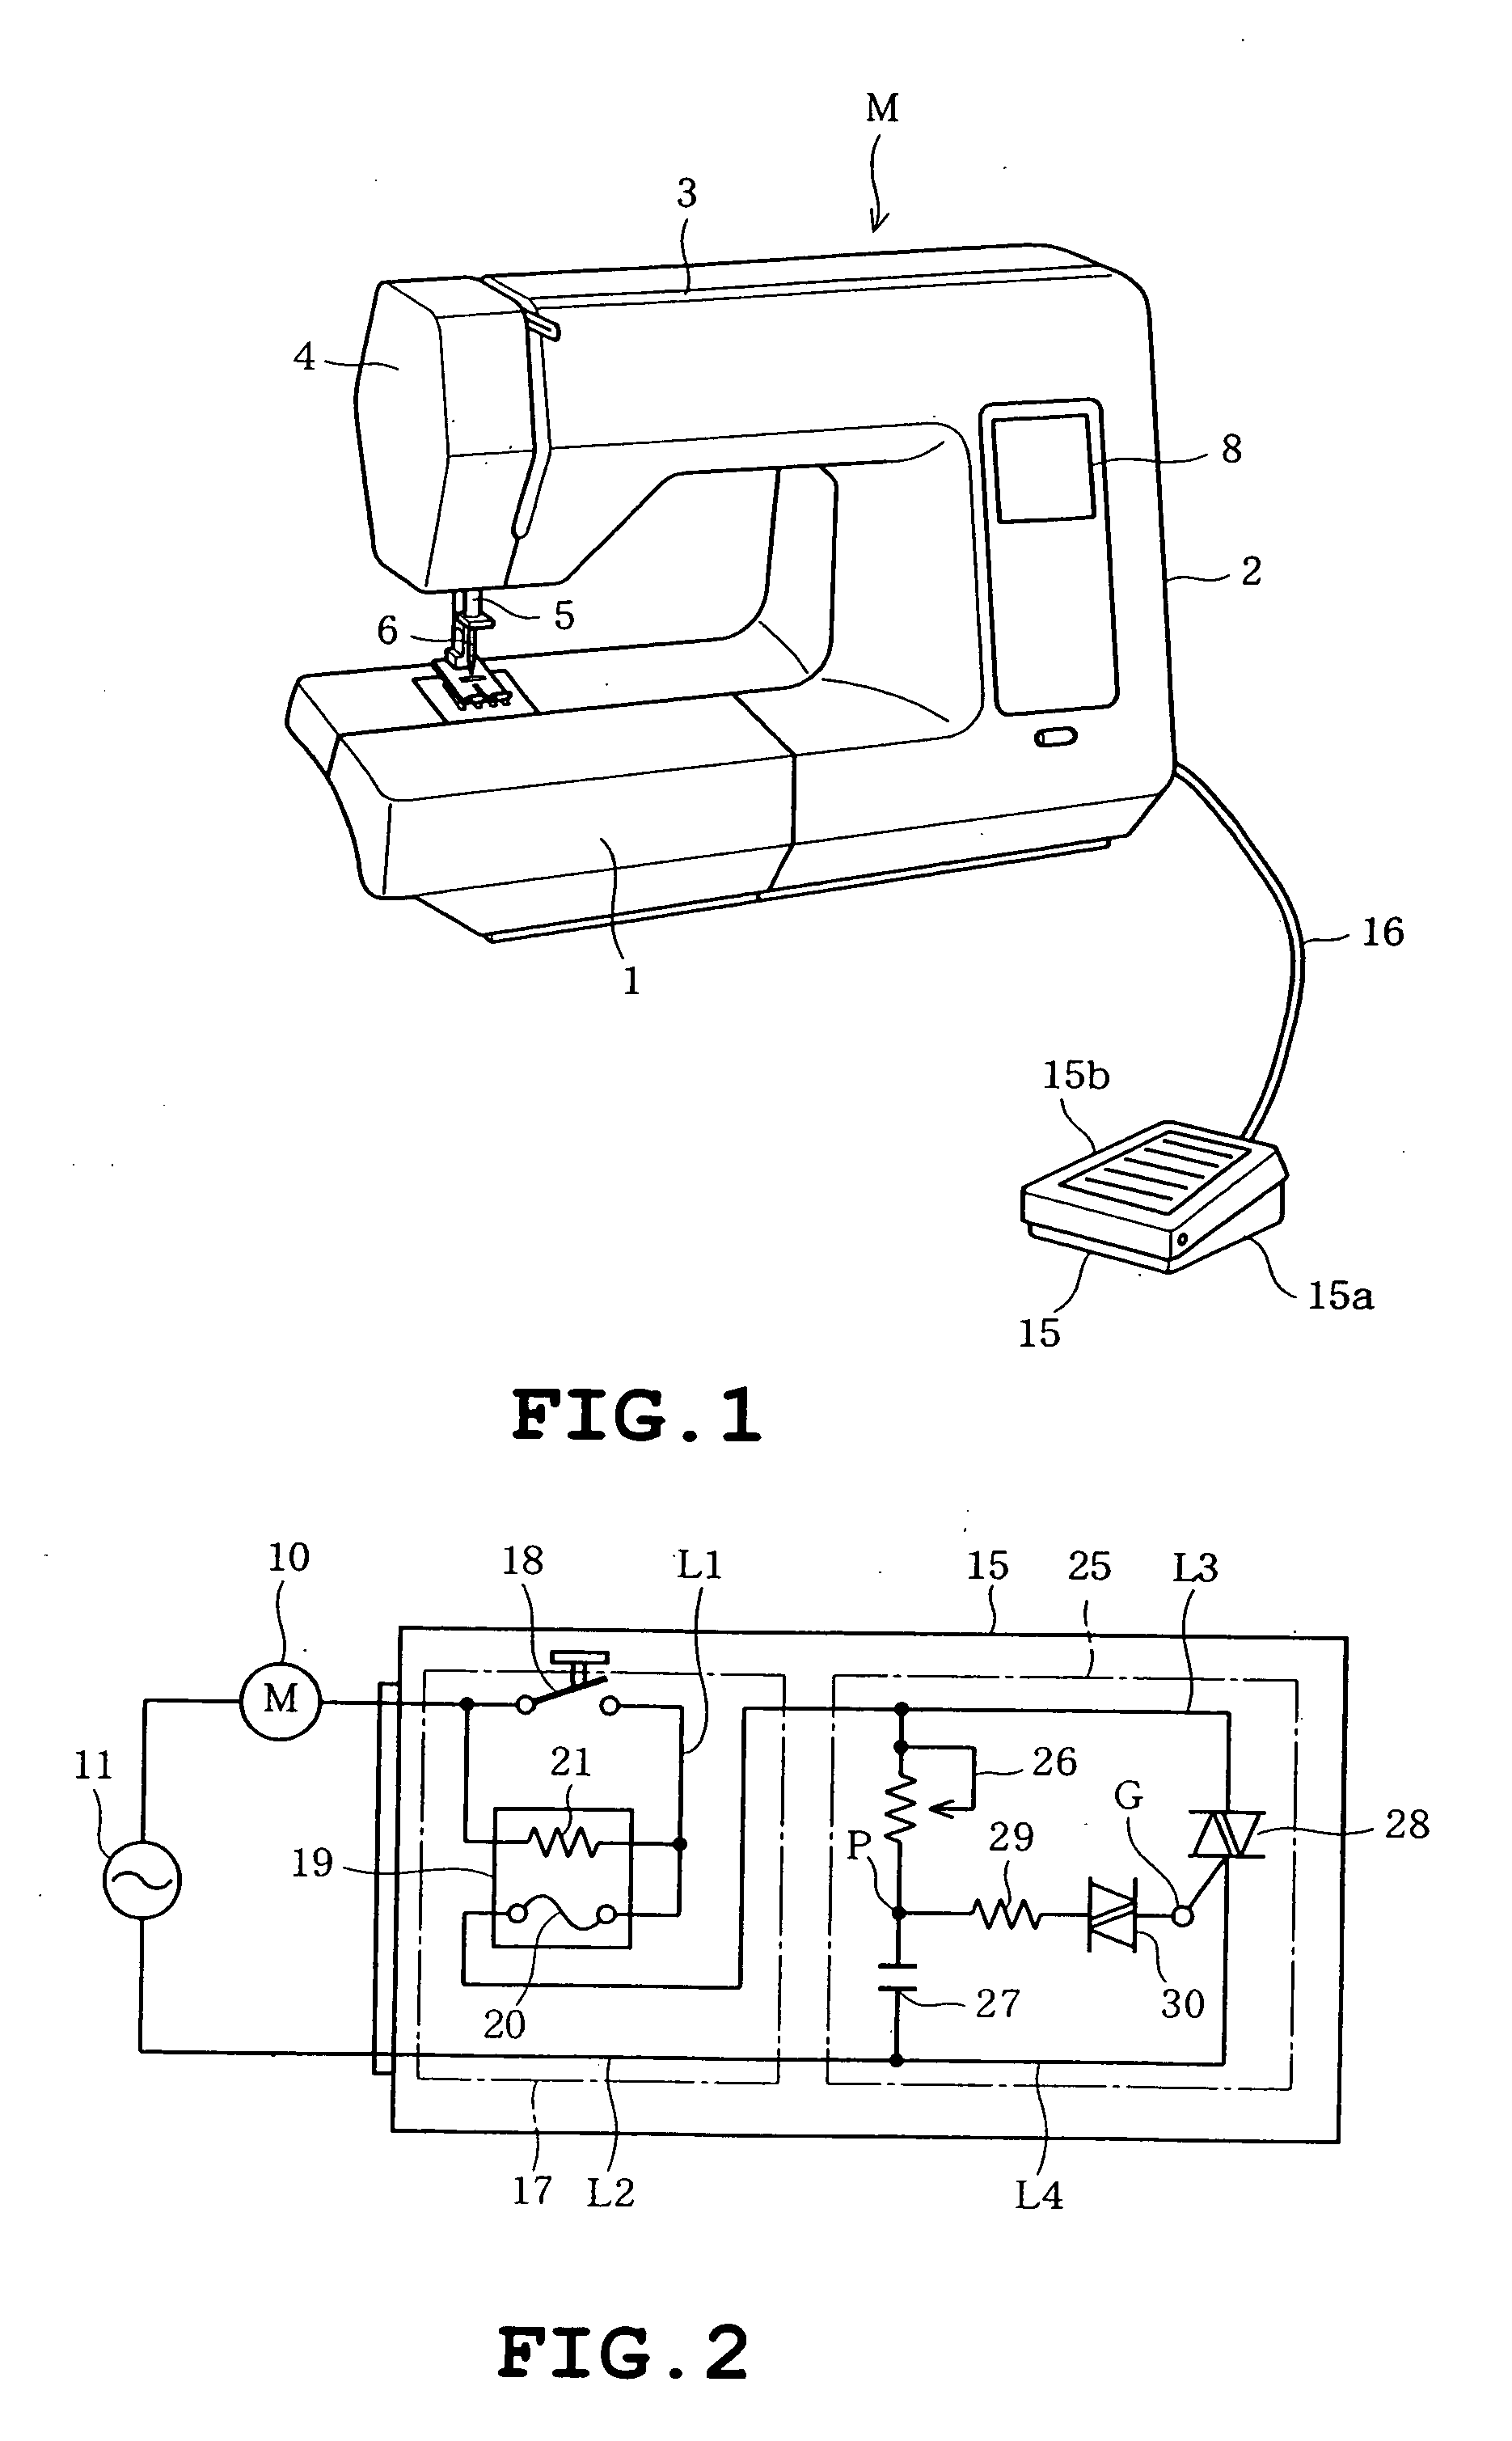 Sewing Machine Foot Pedal Circuit Diagram 41 Wiring Images Index 45 Electrical Equipment Seekiccom Us20070256618a1 20071108 D00001 Patent Us20070256618 Controller For And